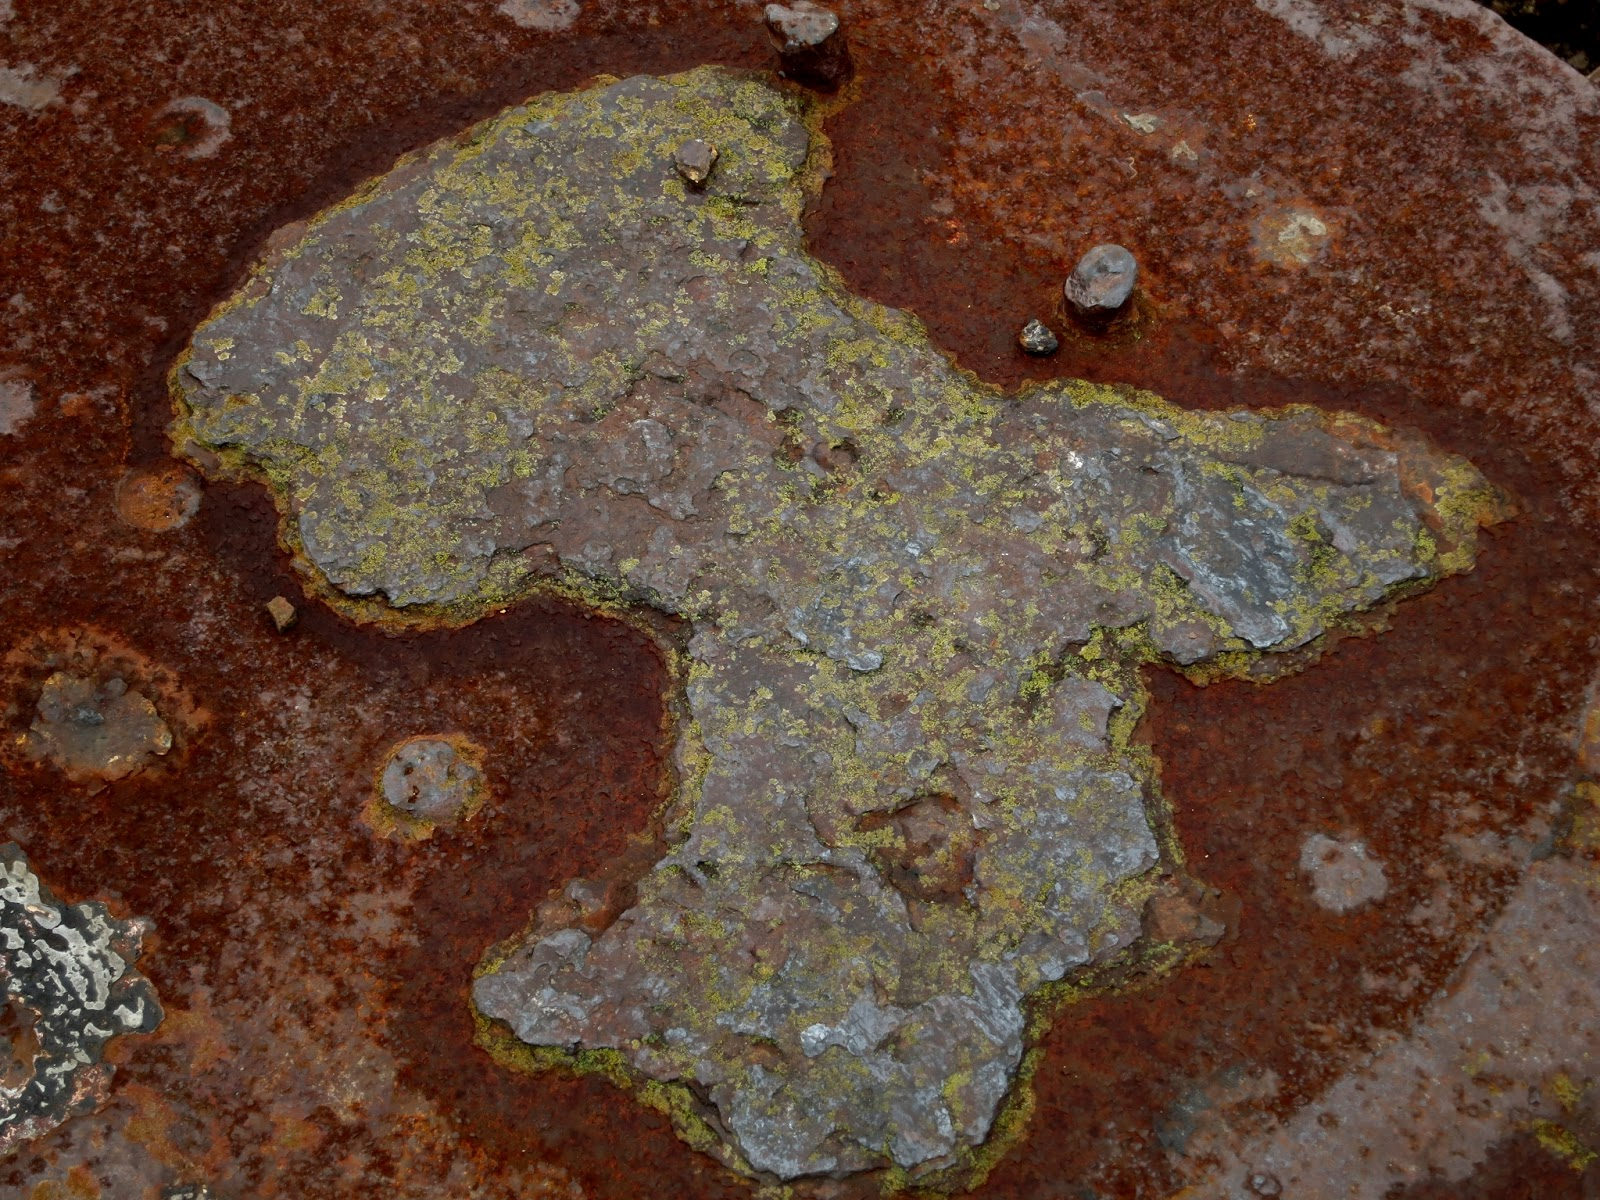 Shape without rust on rusty plate with lichen round the edges.